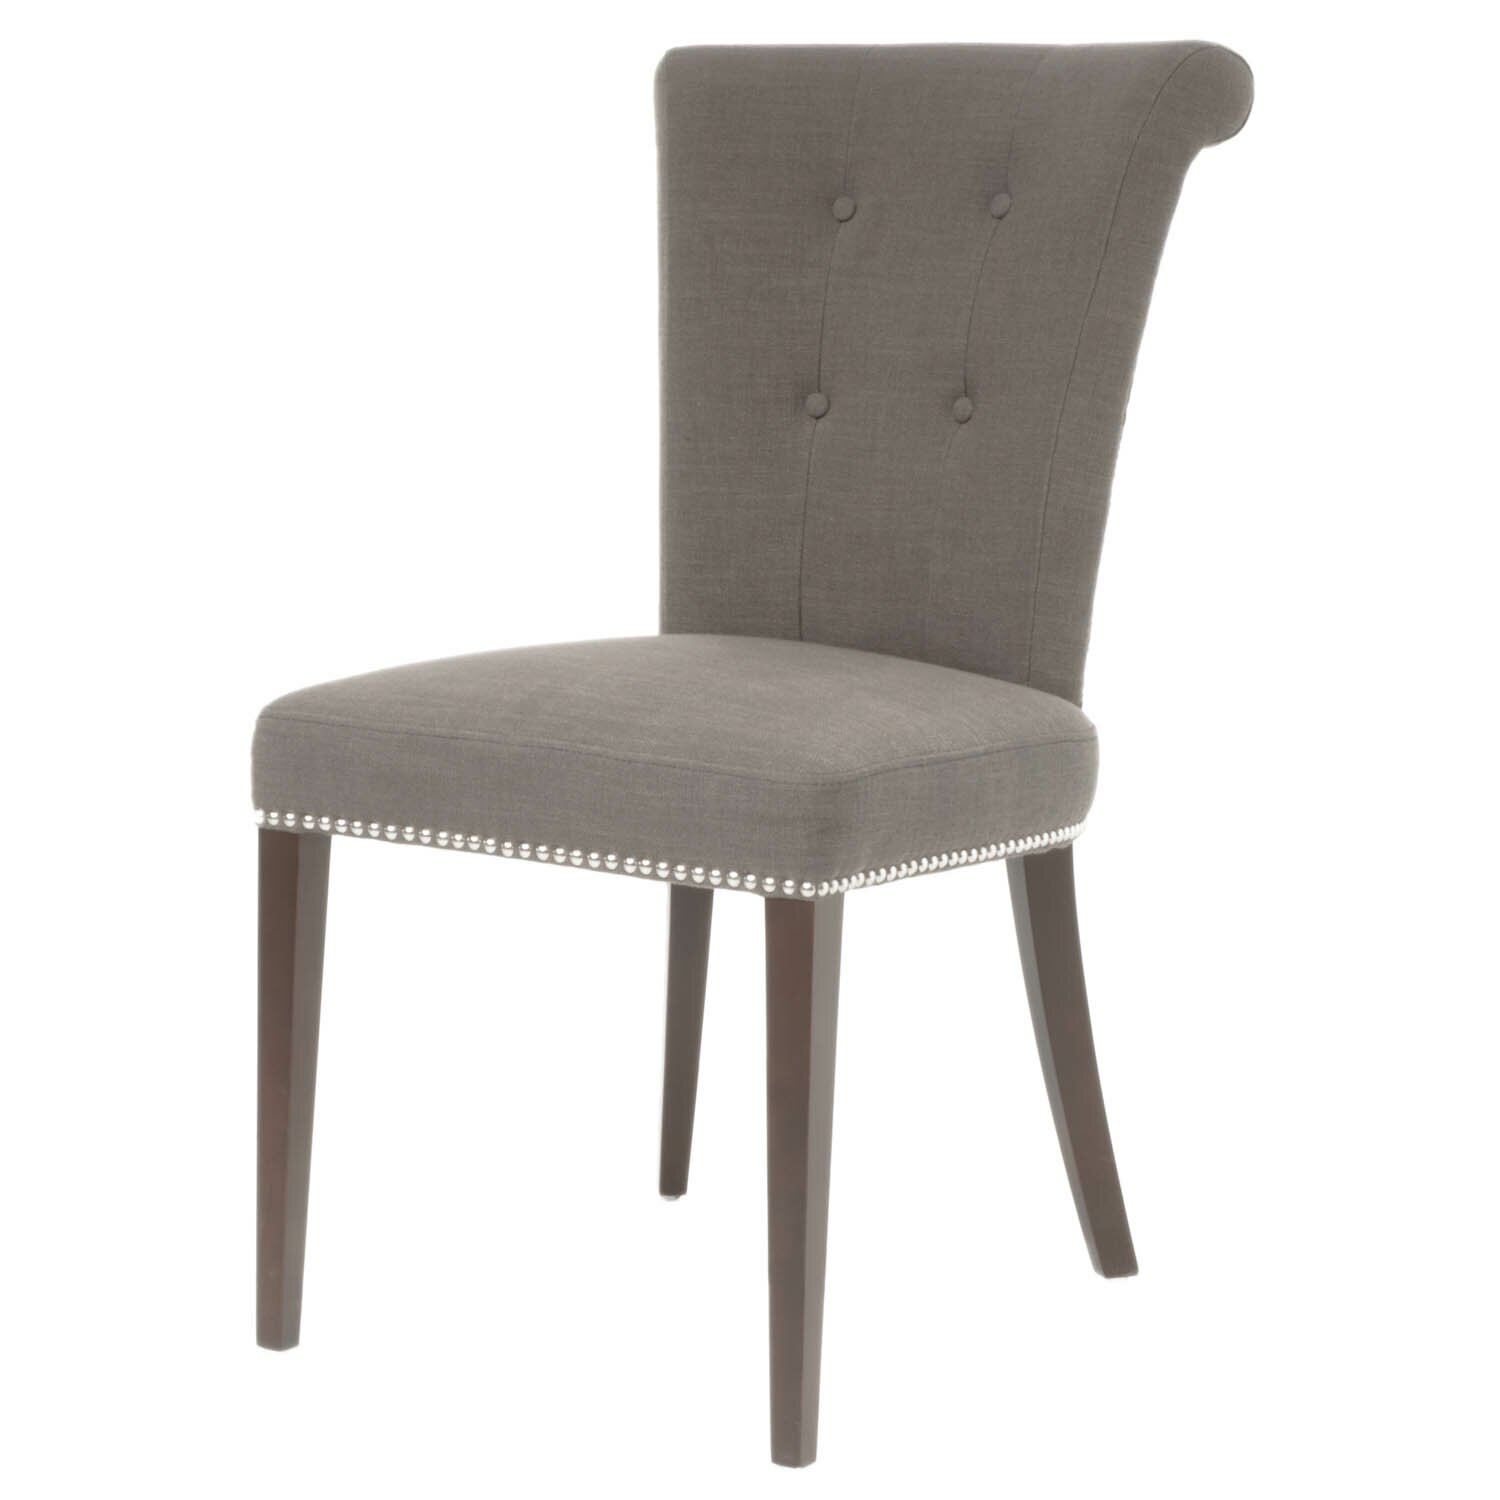 Orient express furniture regency luxe side chair reviews for Furniture express